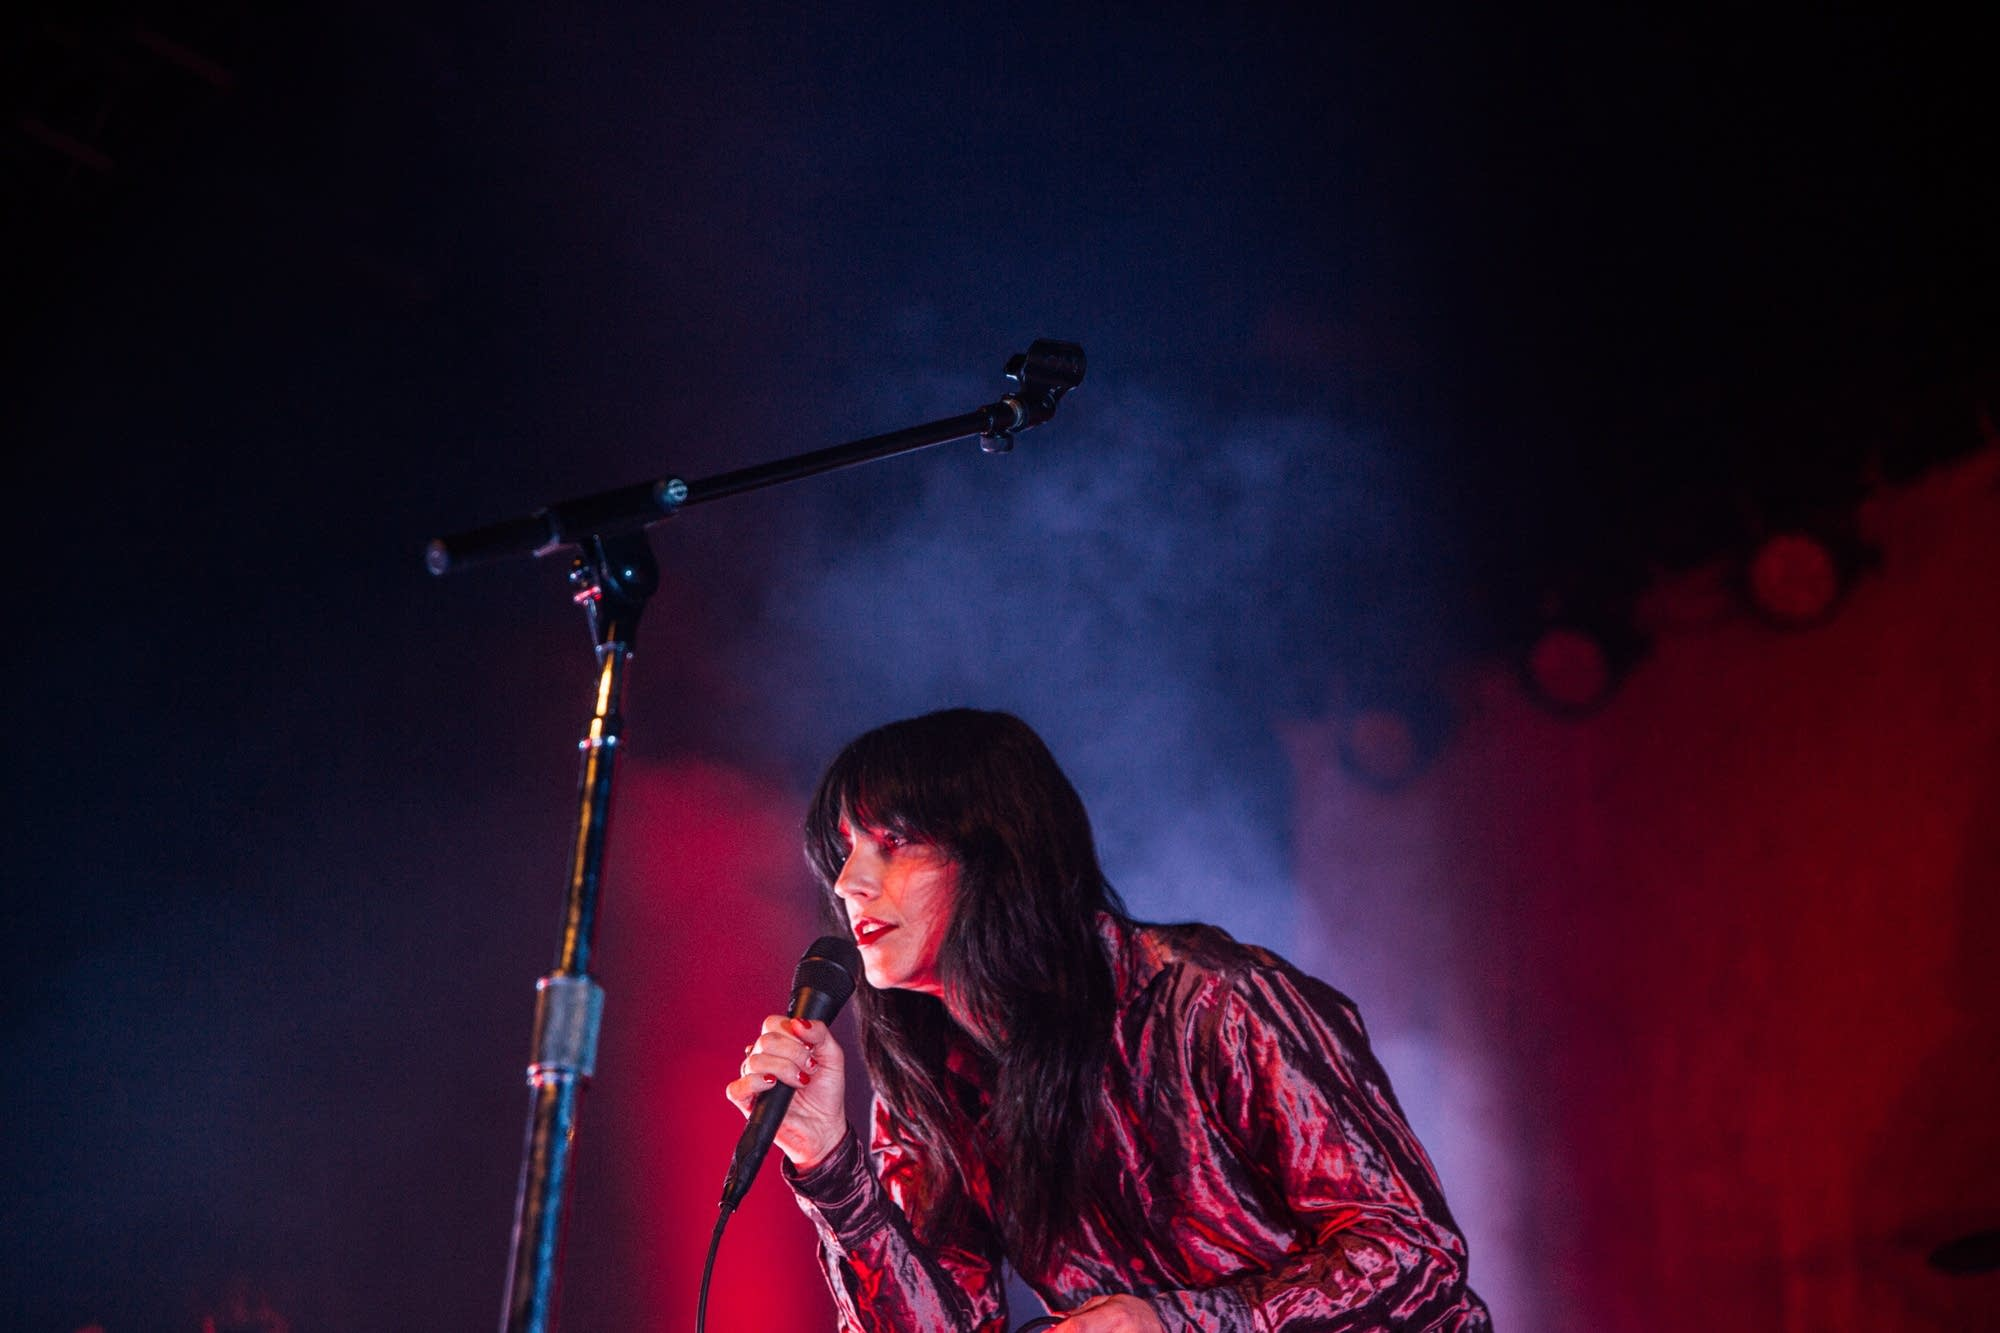 Sharon Van Etten performs at First Avenue on Feb. 16, 2019.